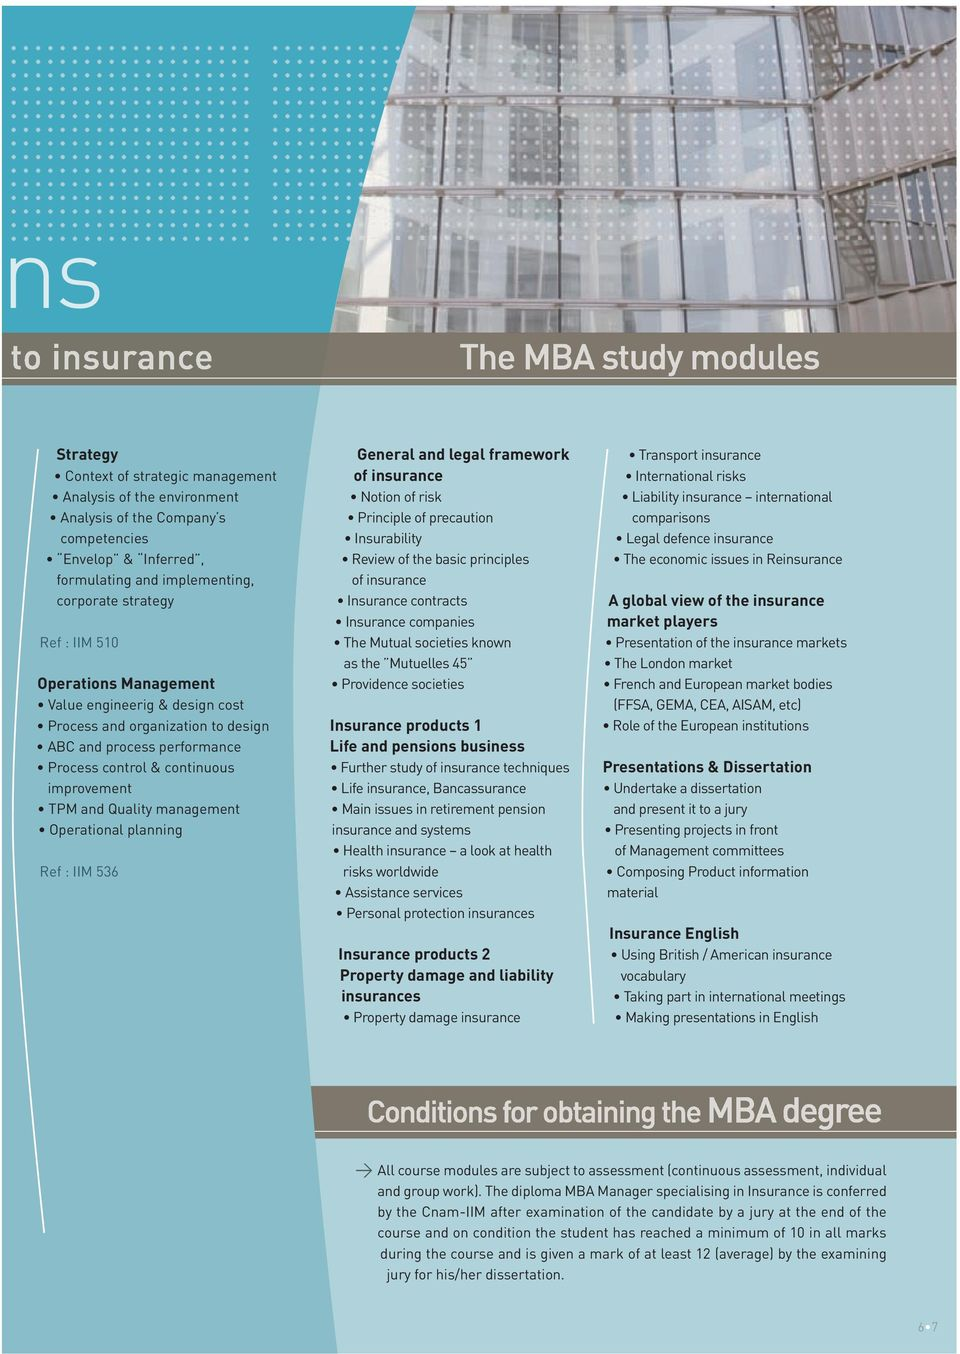 planning Ref : IIM 536 General and legal framework of insurance Notion of risk Principle of precaution Insurability Review of the basic principles of insurance Insurance contracts Insurance companies